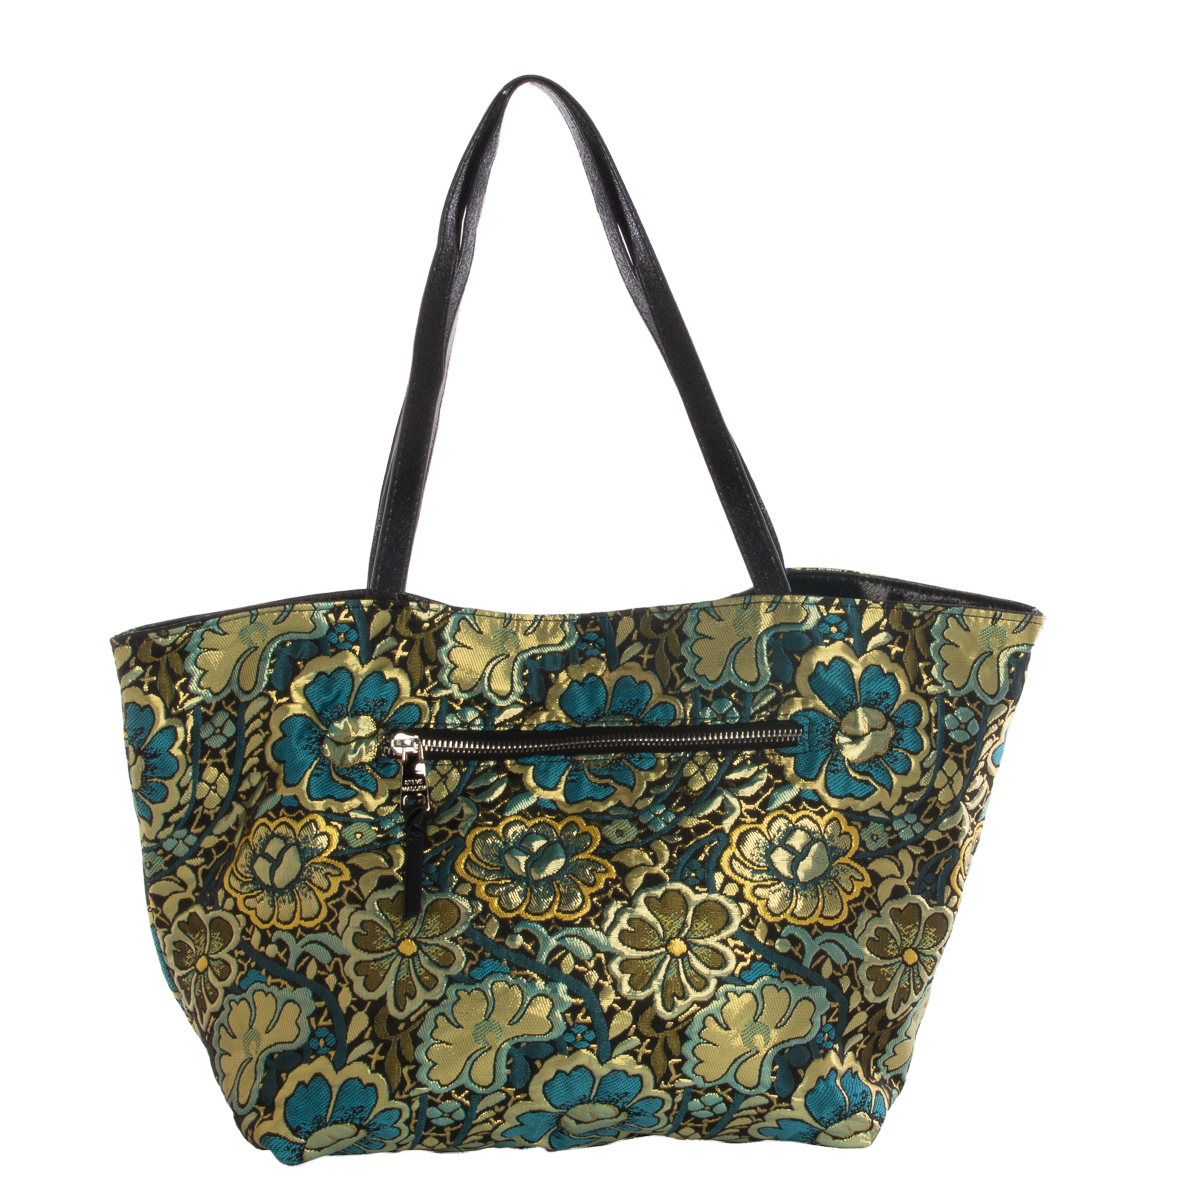 Steve-Madden-Handbags-For-Women-Tote-Bag-Reversible-with-Zip-Clutch-Purse thumbnail 13